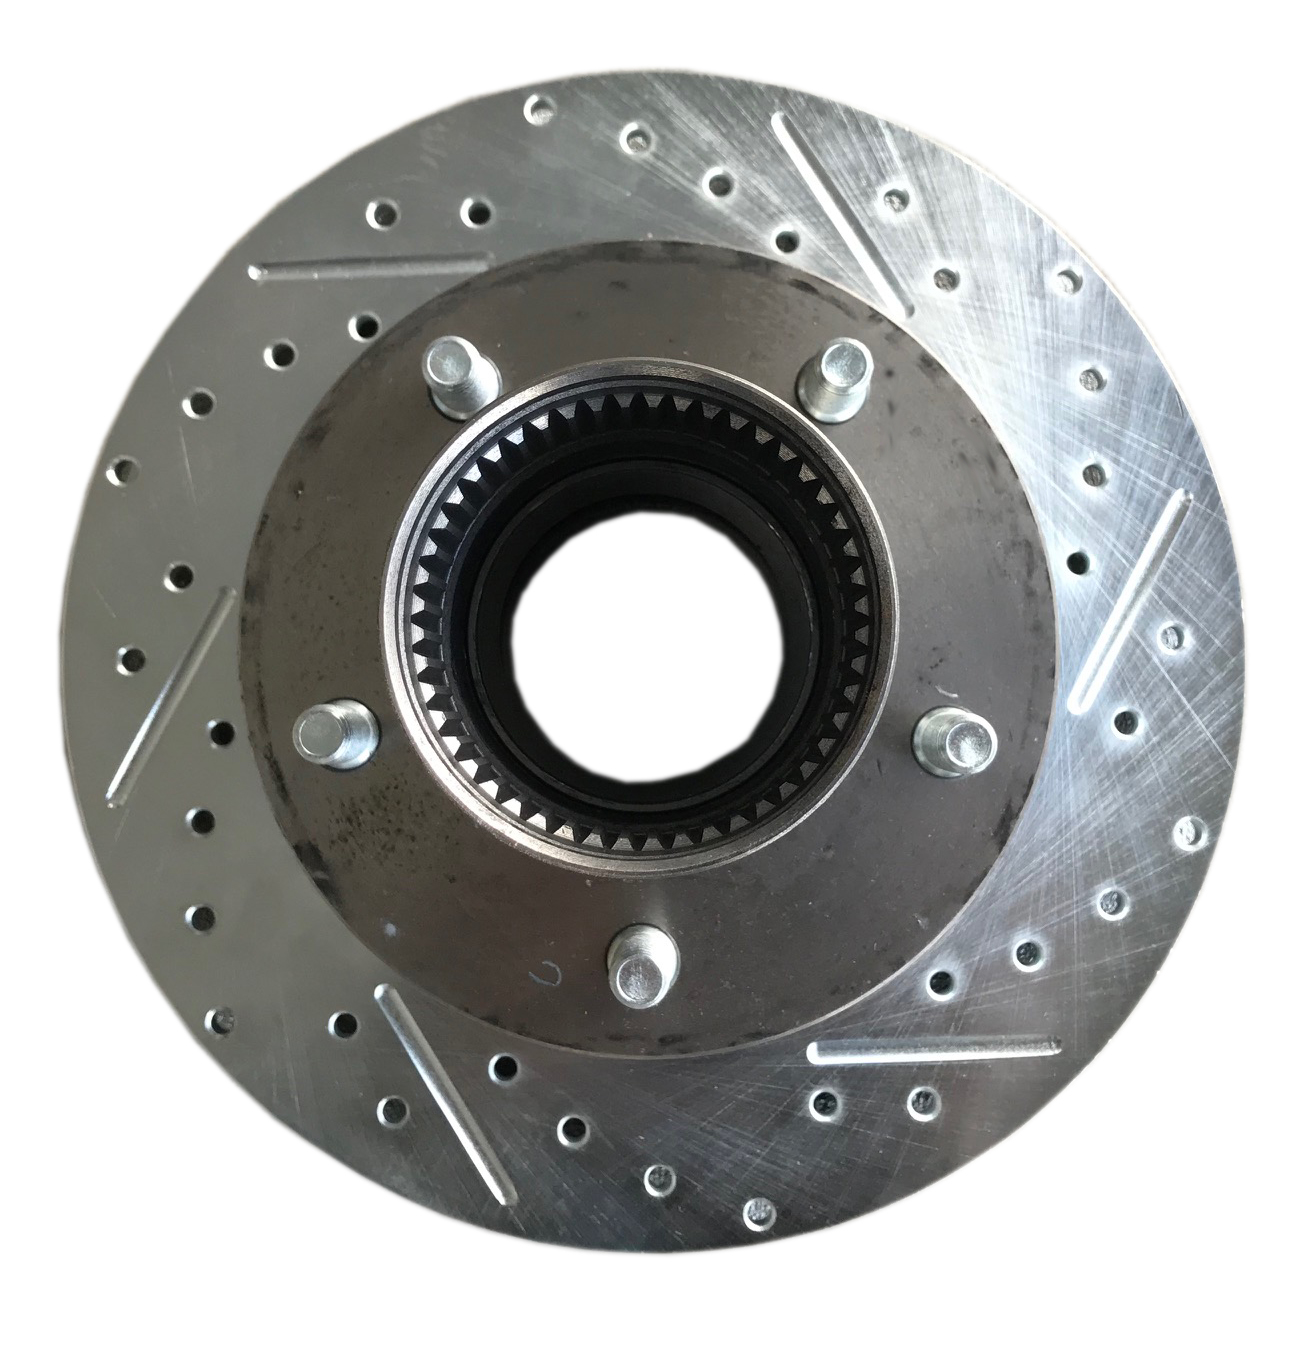 Front Slotted Disc Brake Hub/Rotor Assembly, Driver